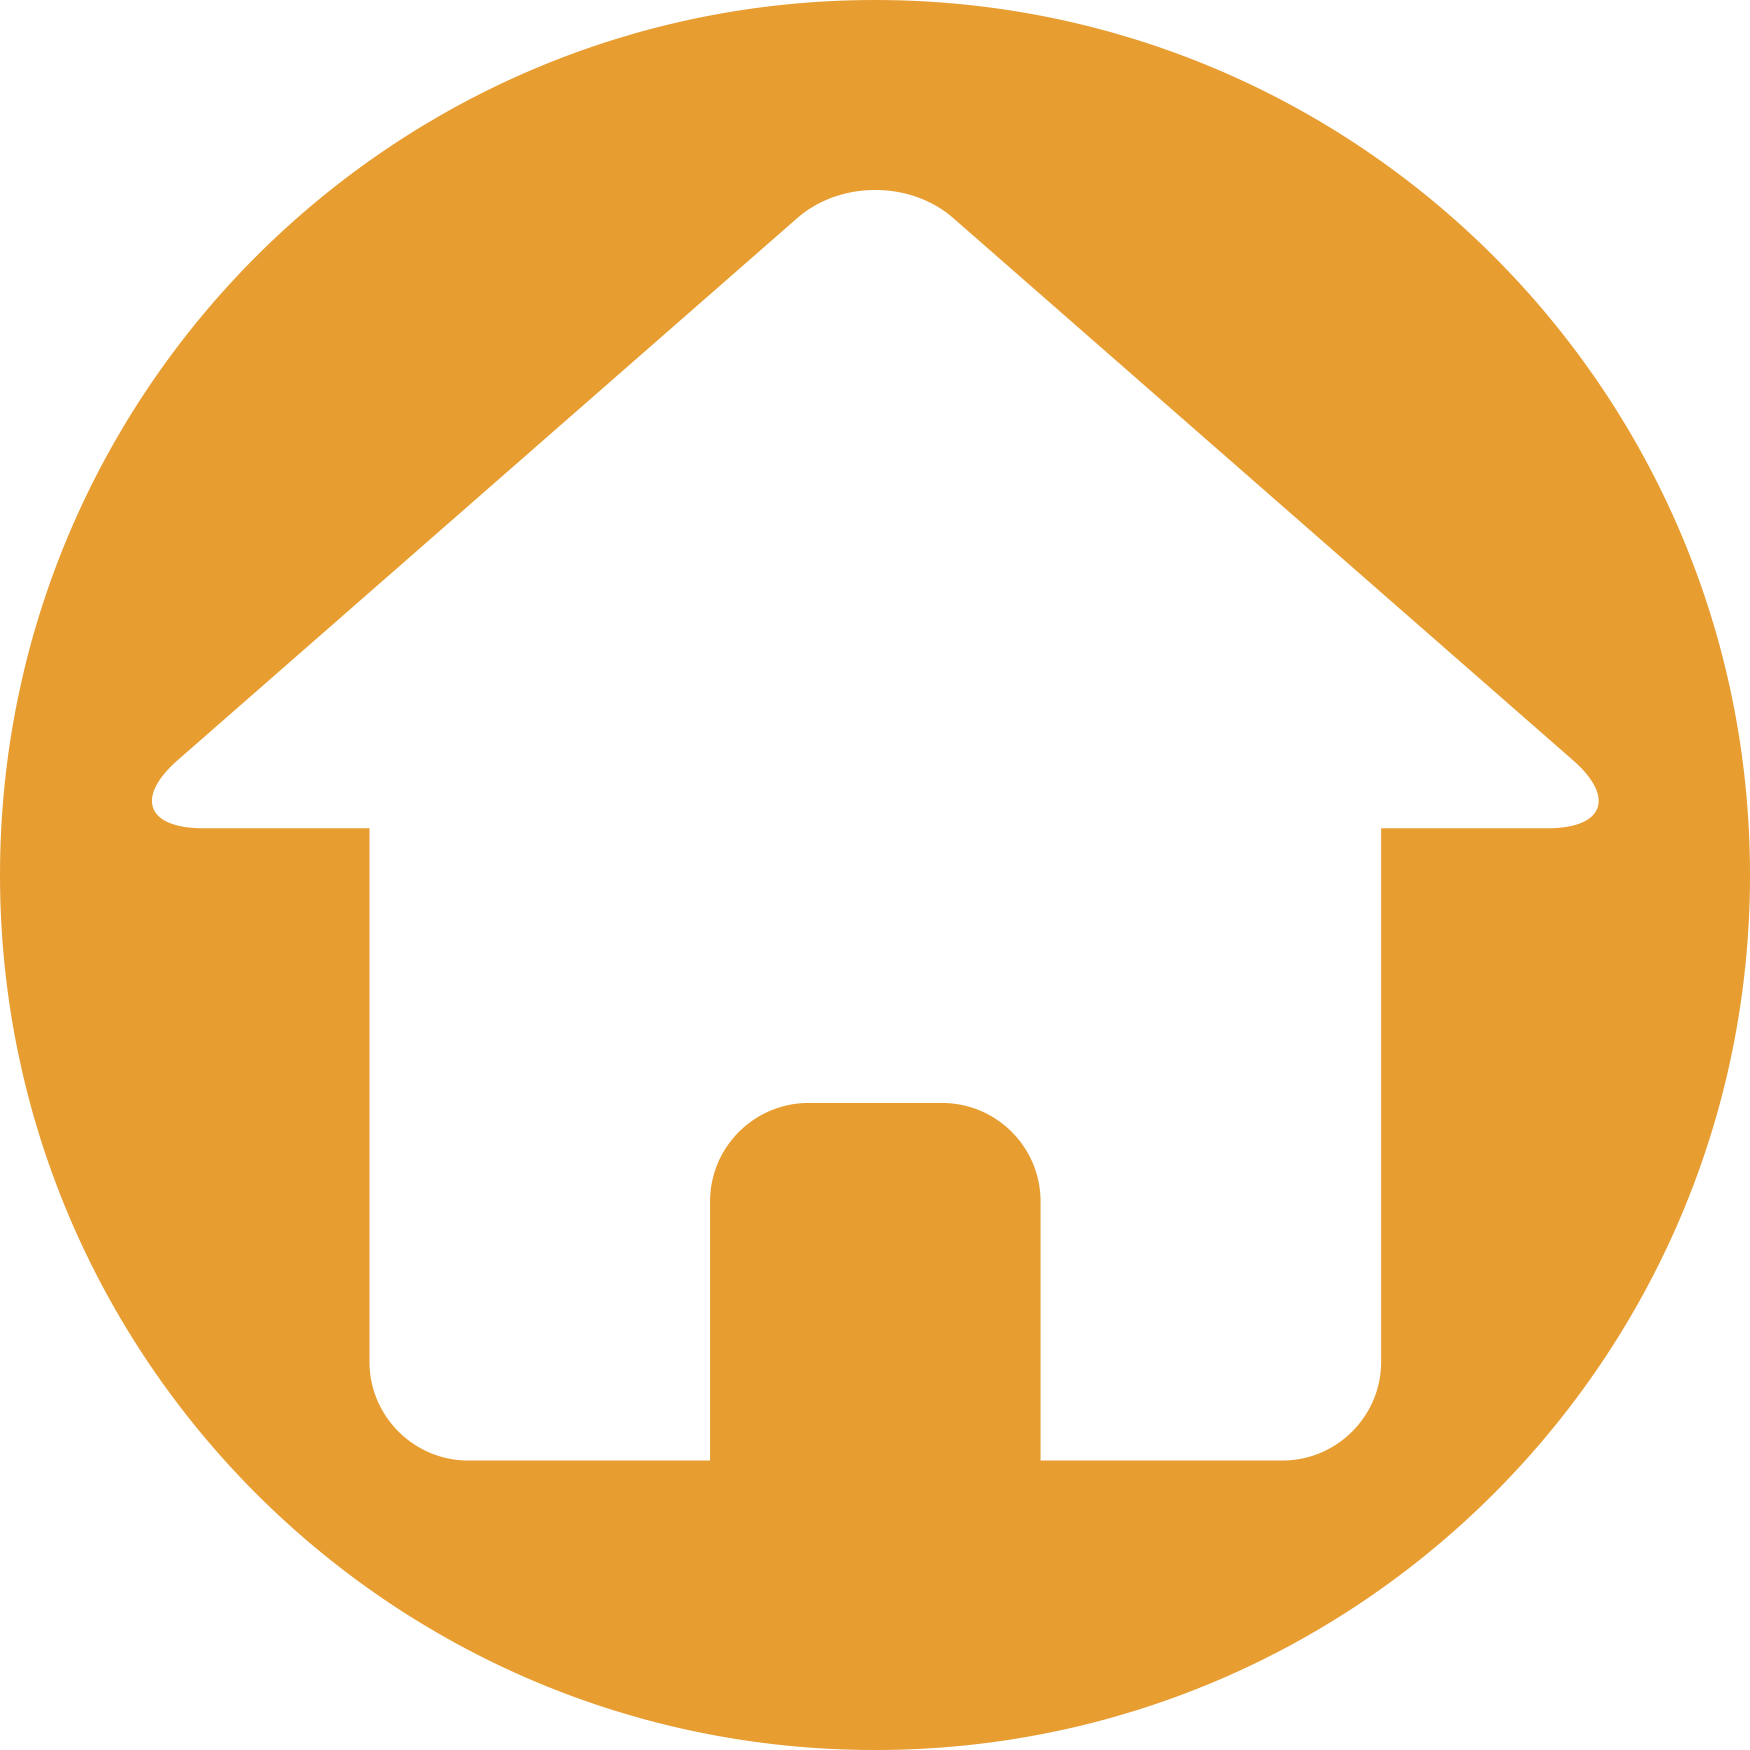 Home png transparent. House images cliparts free